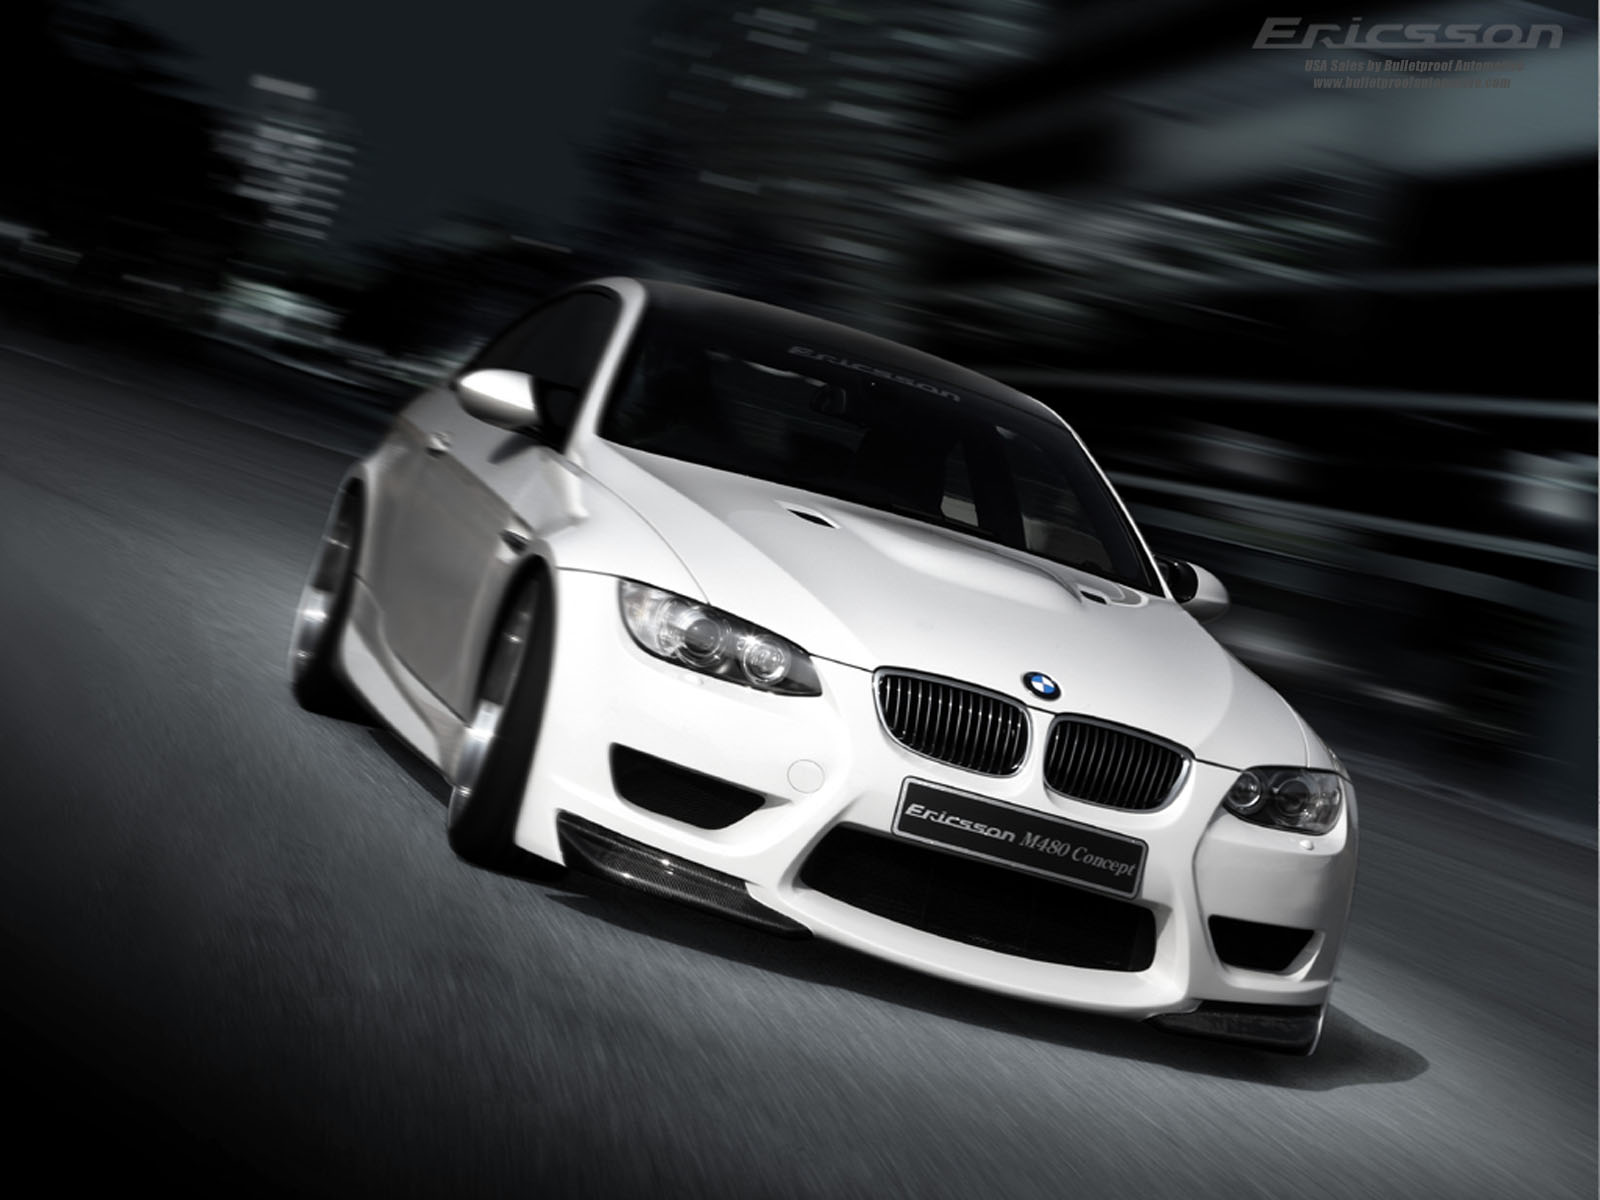 153 <b>BMW M3</b> HD <b>Wallpapers</b> | Backgrounds - <b>Wallpaper</b> Abyss